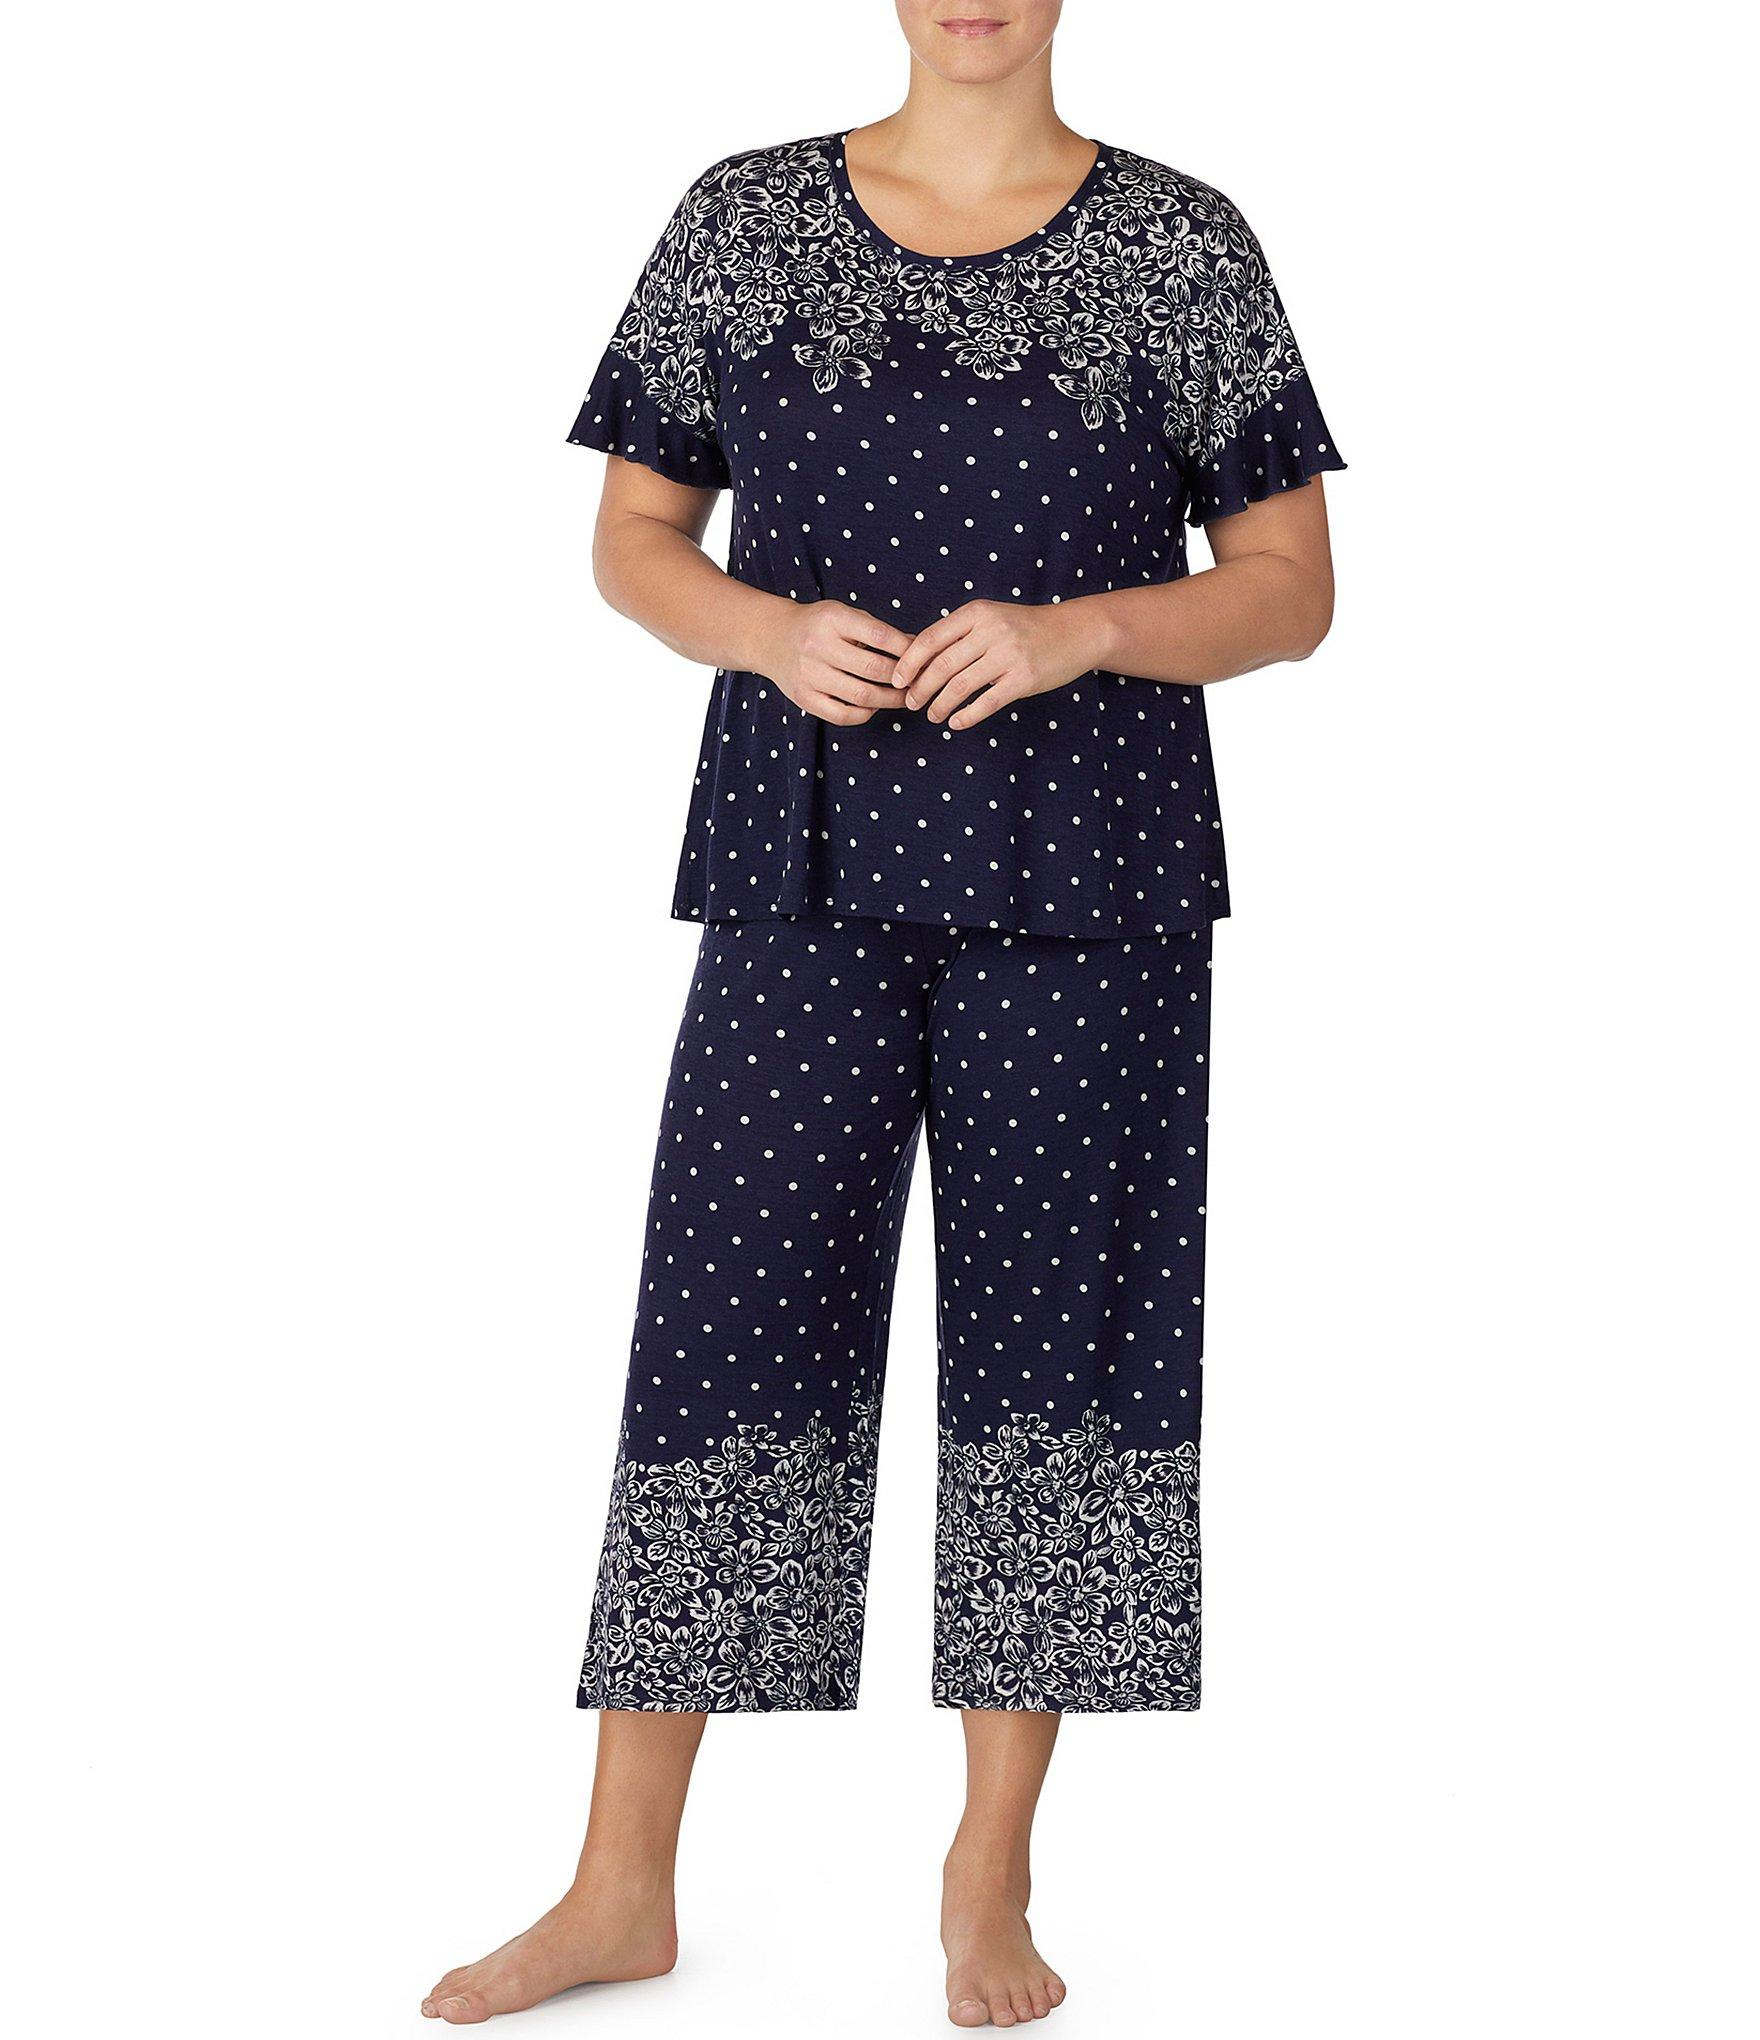 572fecb7e66 Lyst - Kensie Plus Floral   Dot Print Jersey Knit Sleep Top in Blue